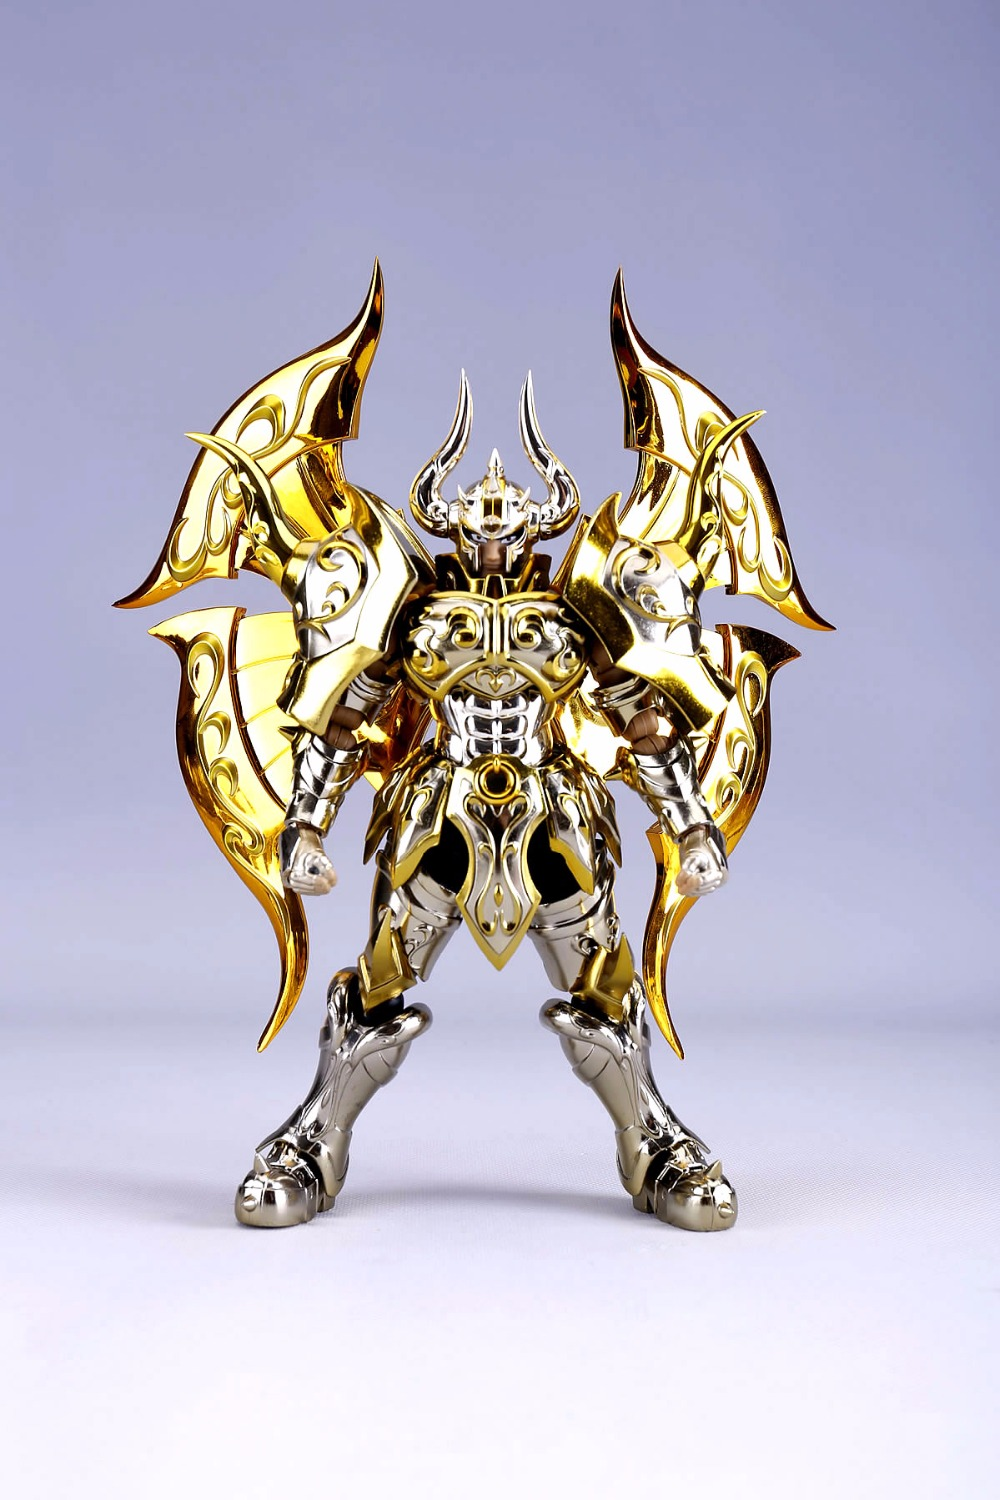 in stock Aldebaran Taurus soul of gold SOG Divine armor Saint Seiya Myth Cloth EX metal toy PayPal Payment